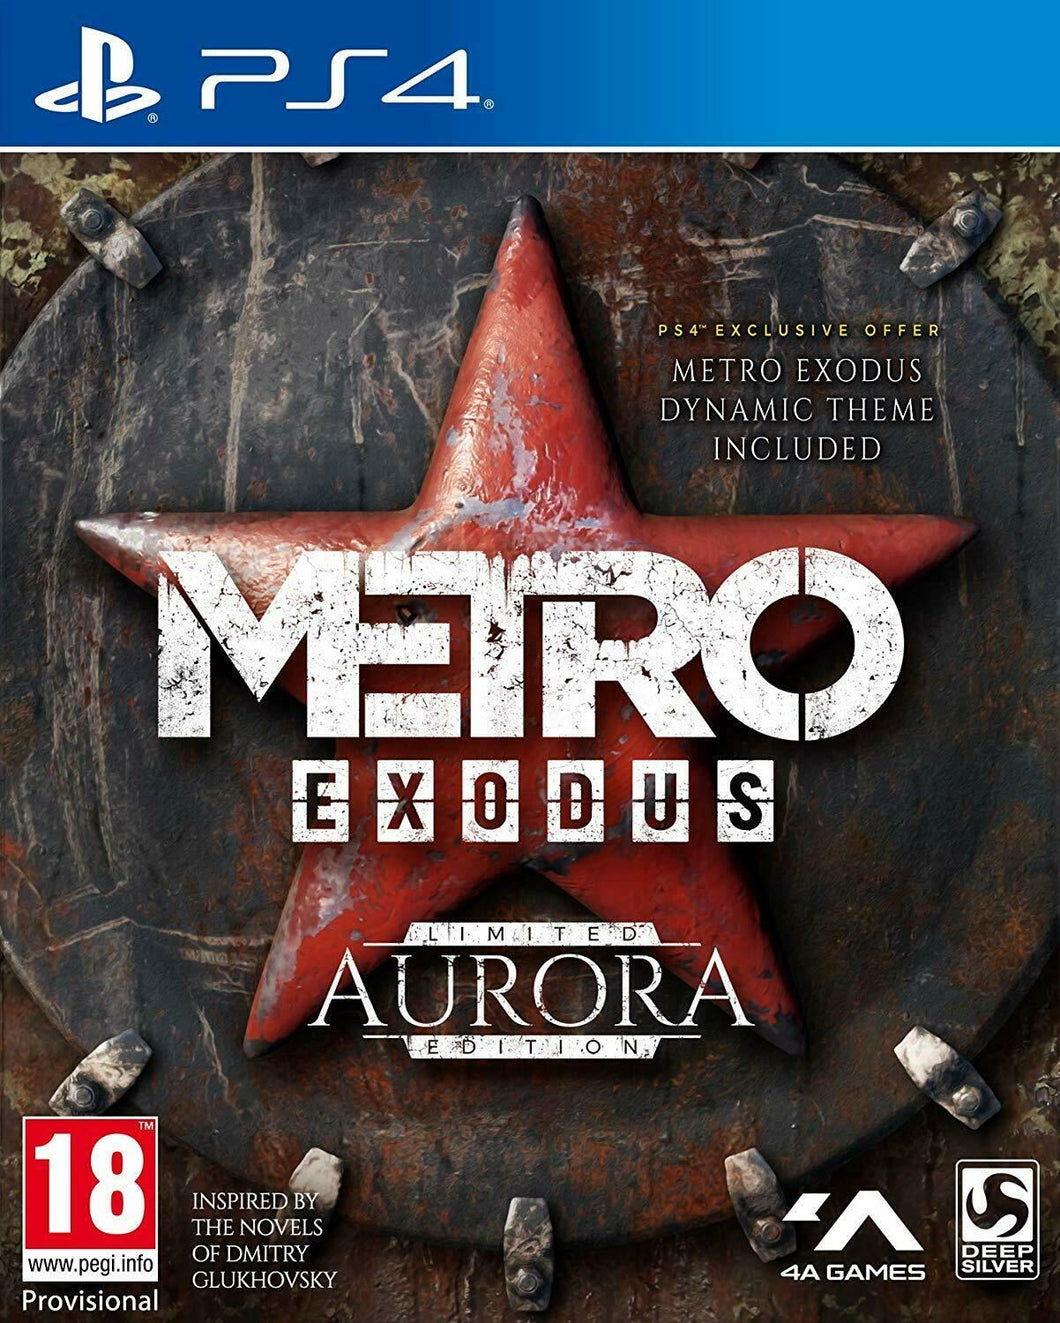 PLAYSTATION 4 NEW SEALED Game * METRO EXODUS - AURORA LIMITED EDITION * PS4